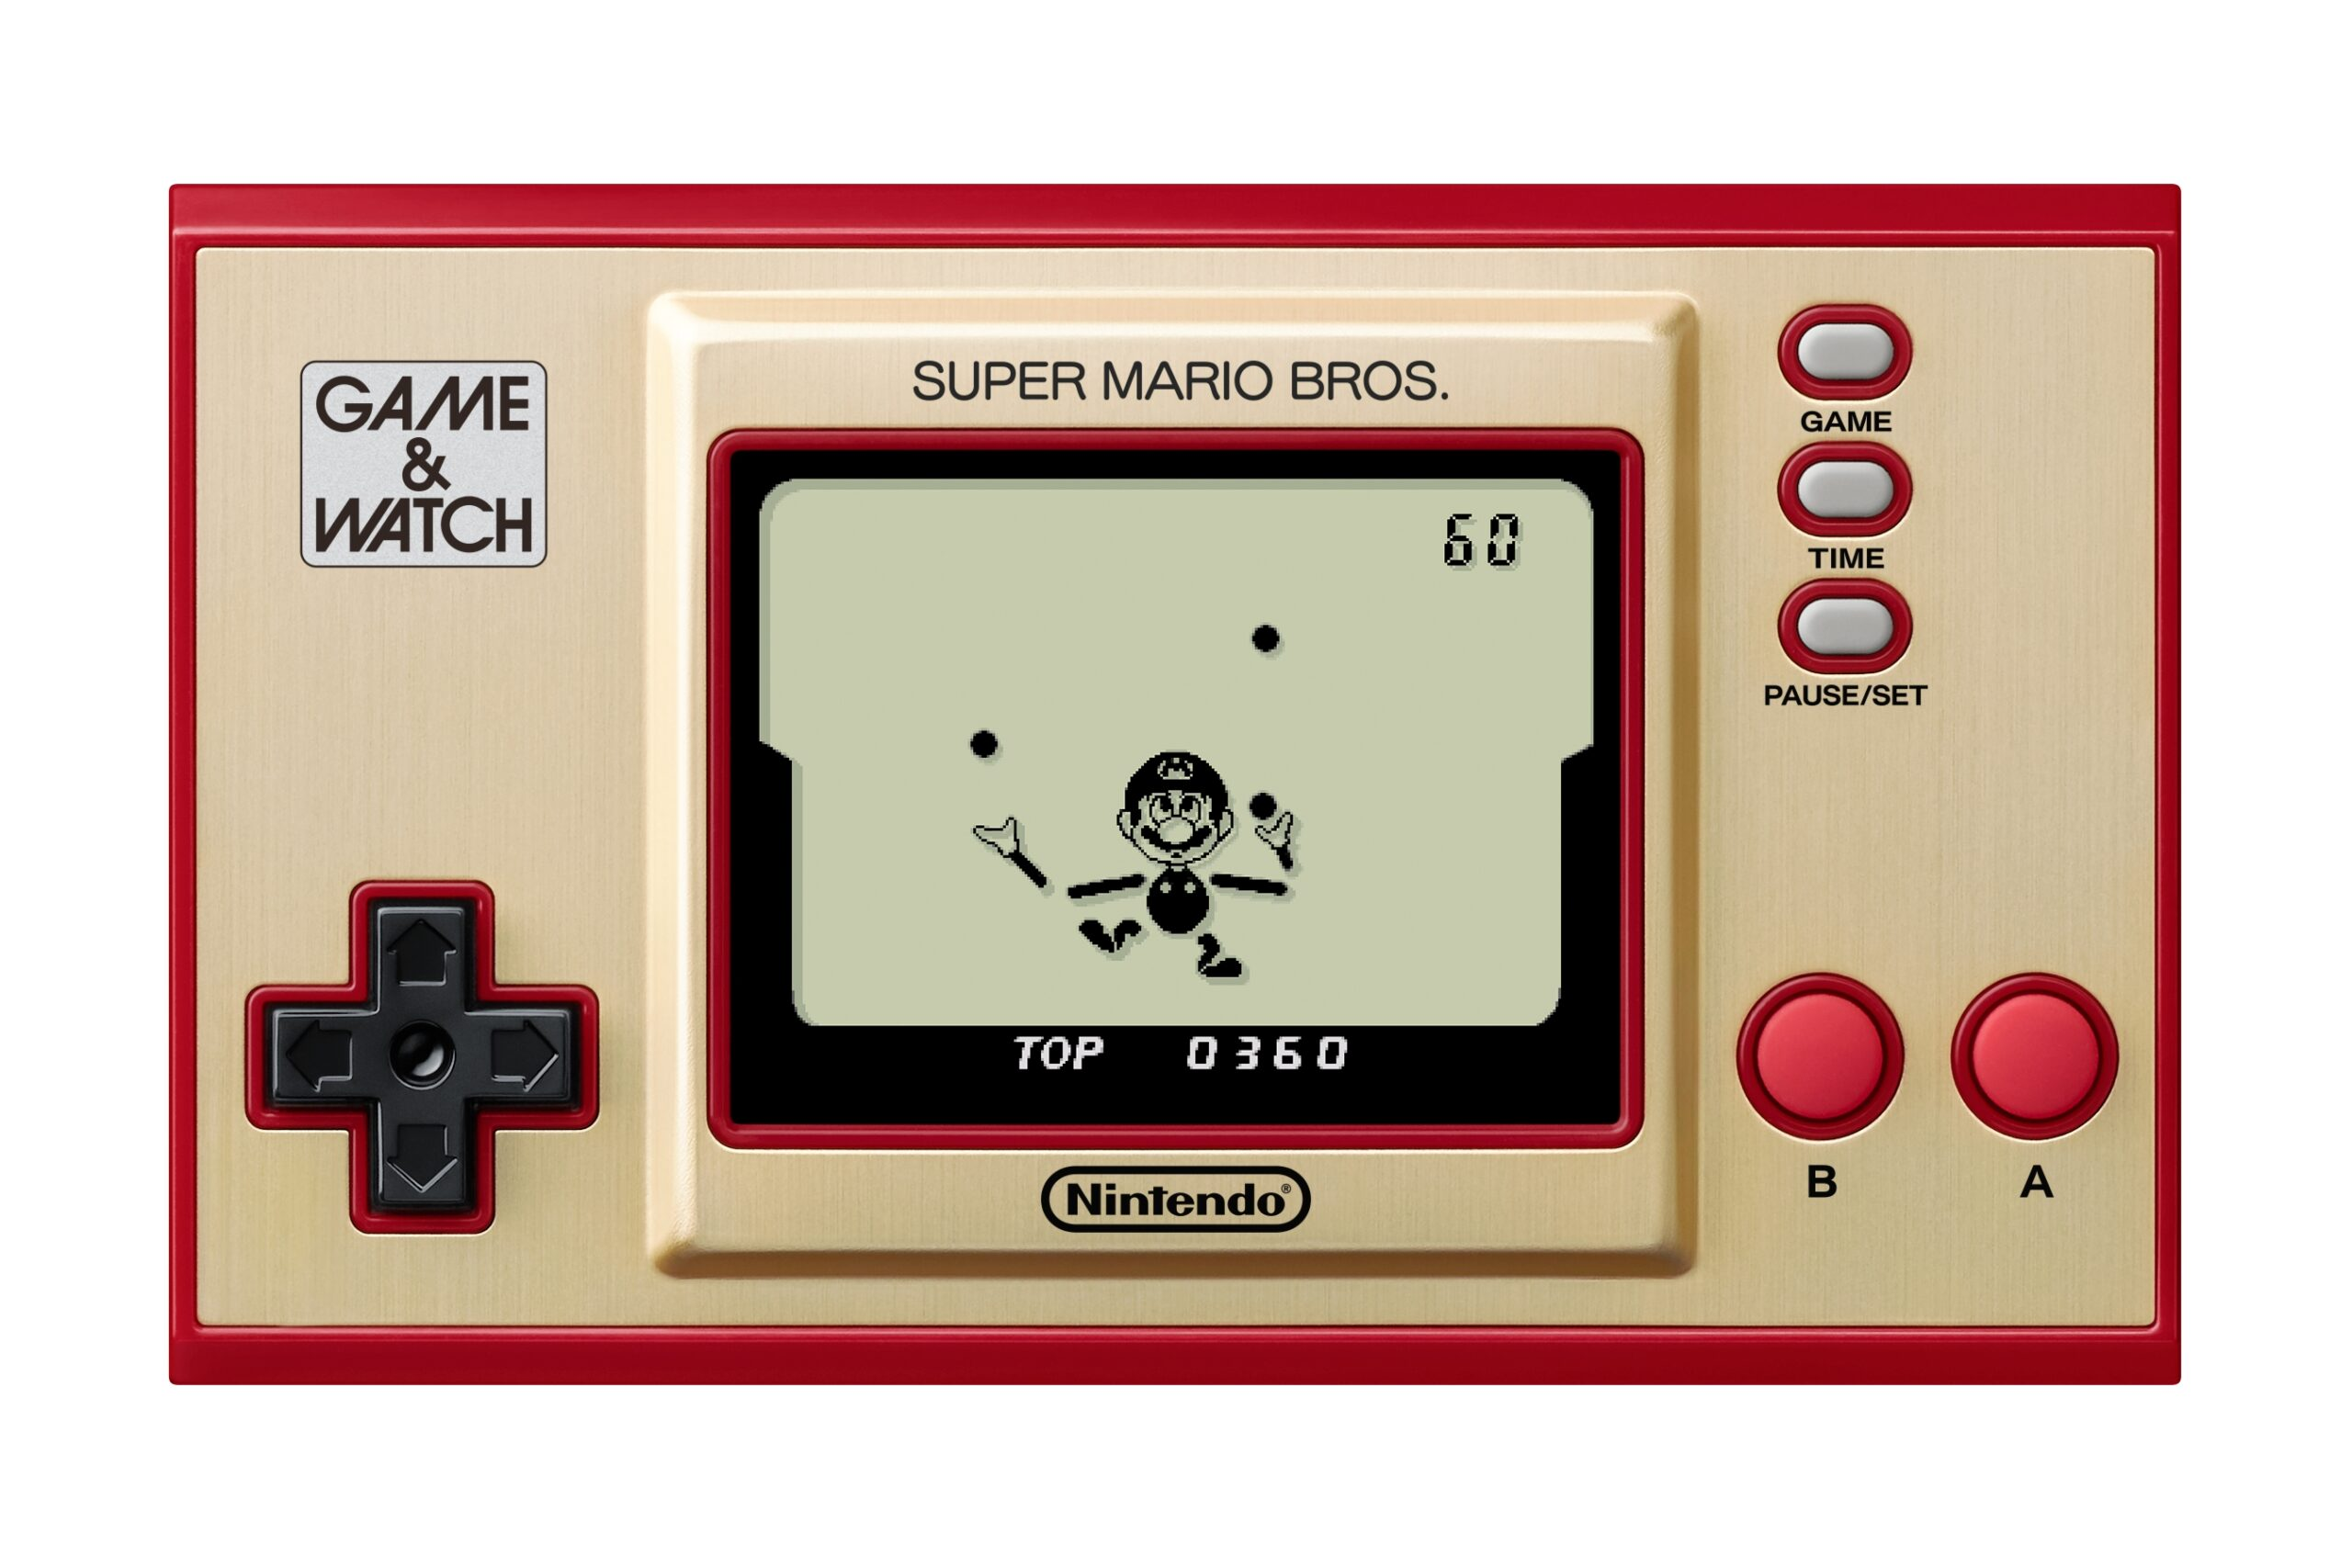 Game-and-Watch-Super-Mario-Bros_2020_09-03-20_003